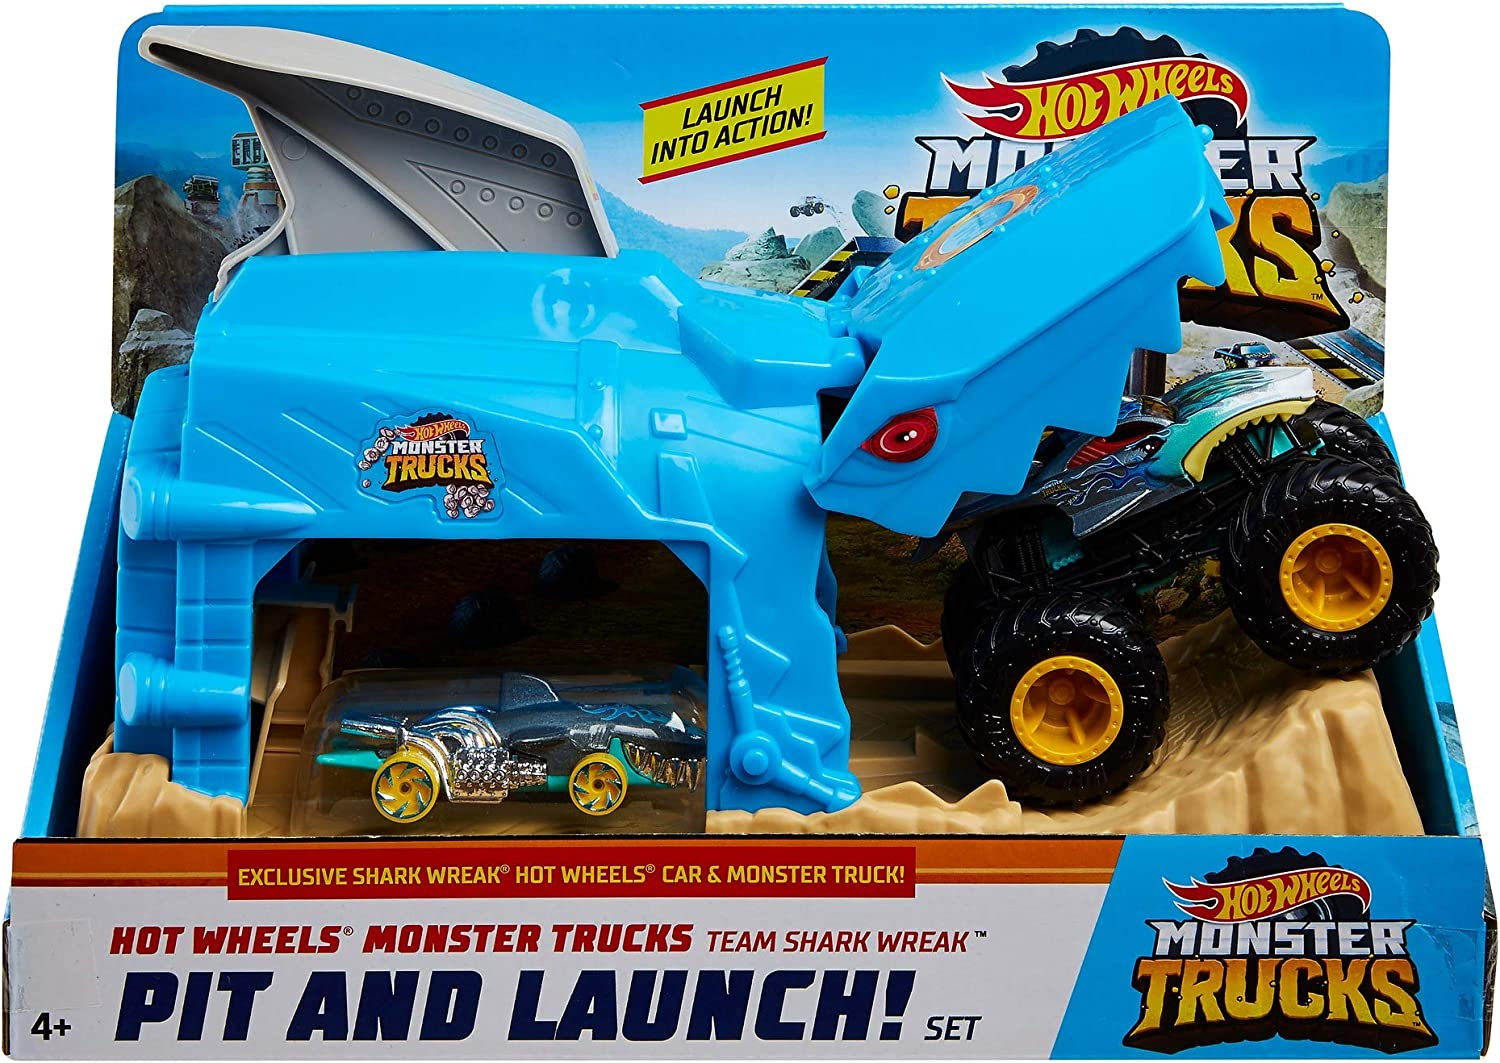 Amazon Com Hot Wheels Monster Truck Pit Launch Play Sets With A Monster Truck And A 1 64 Car Team Shark Wreak Multi Model Gky03 Toys Games